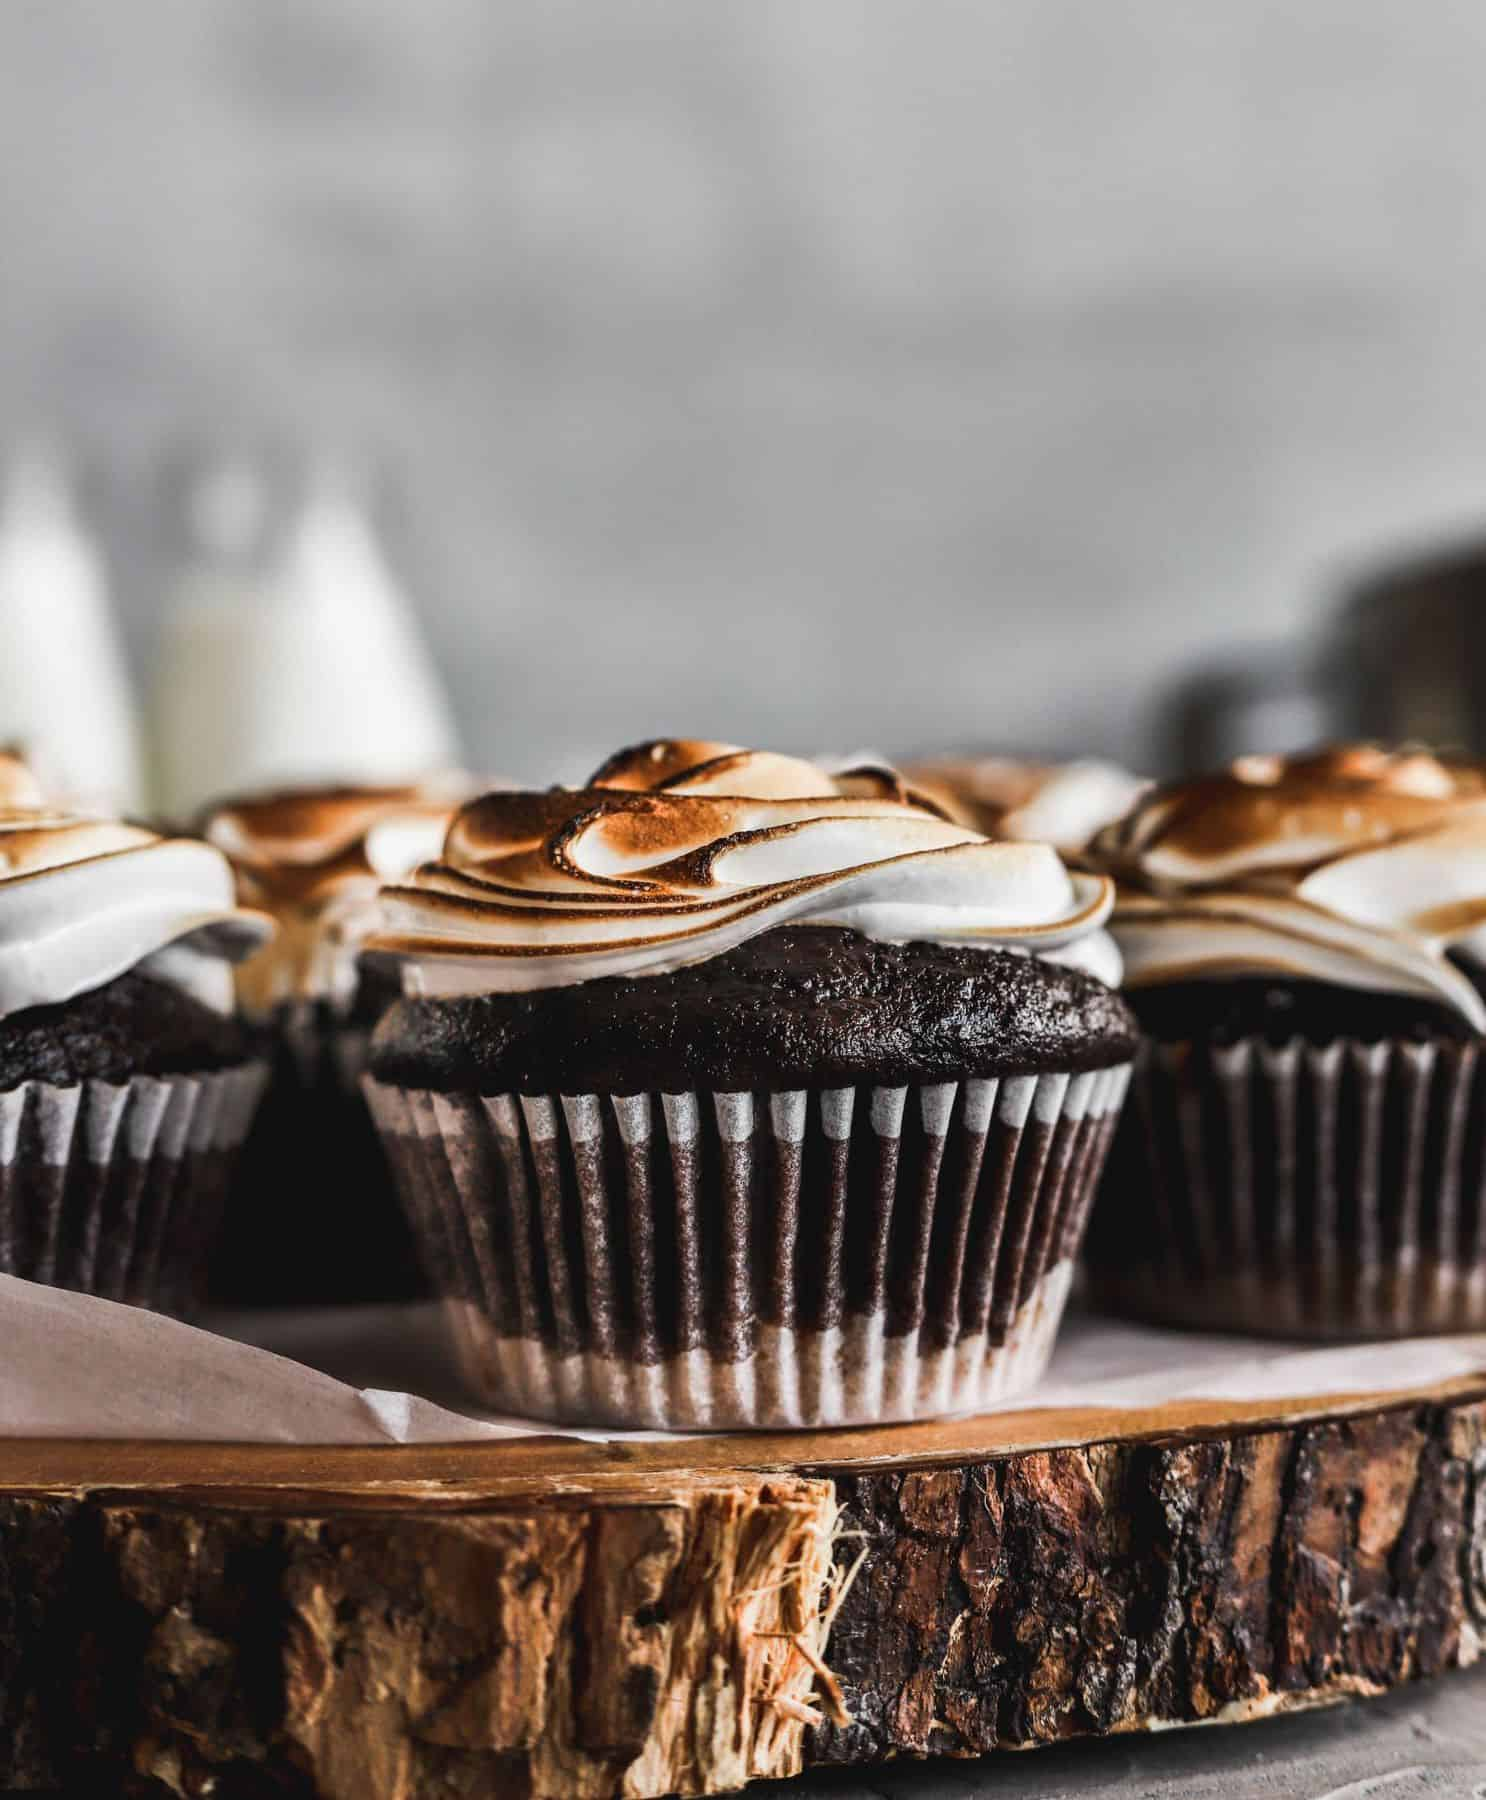 Toasted S'mores Cupcakes that are easy to make chocolate cupcakes filled with hot fudge.